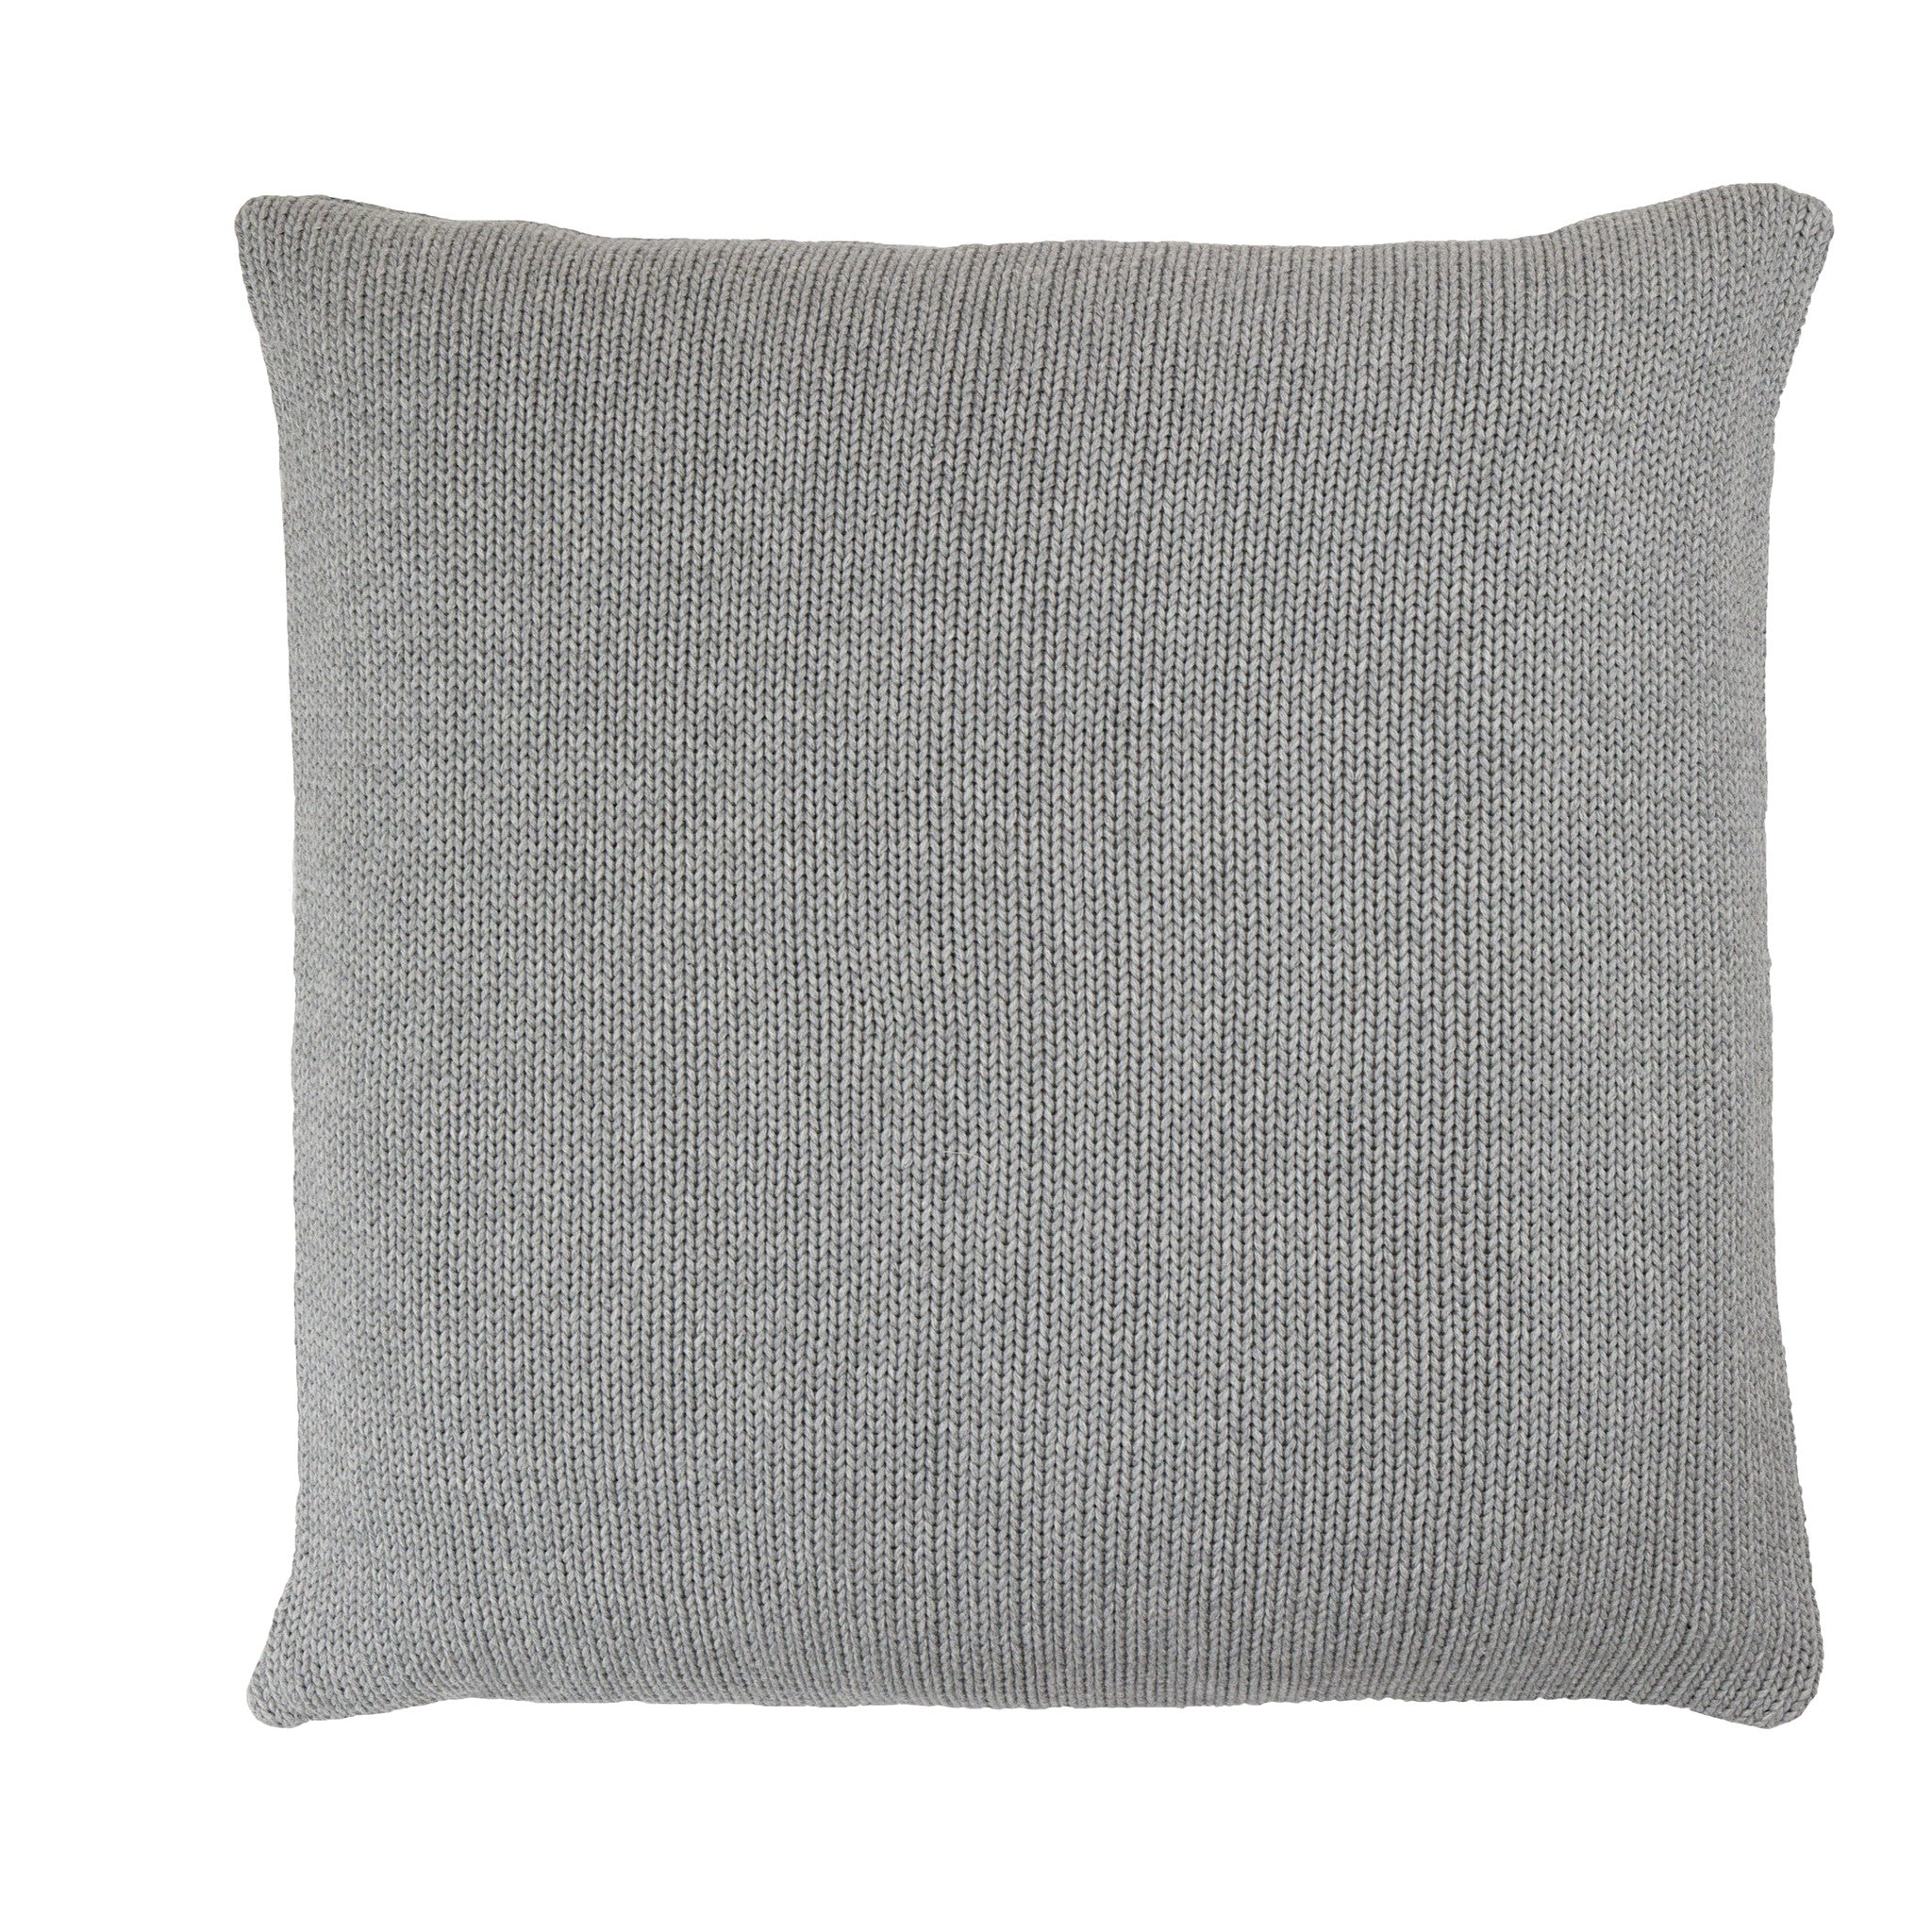 Tactile Stripes cushion, light grey (back)